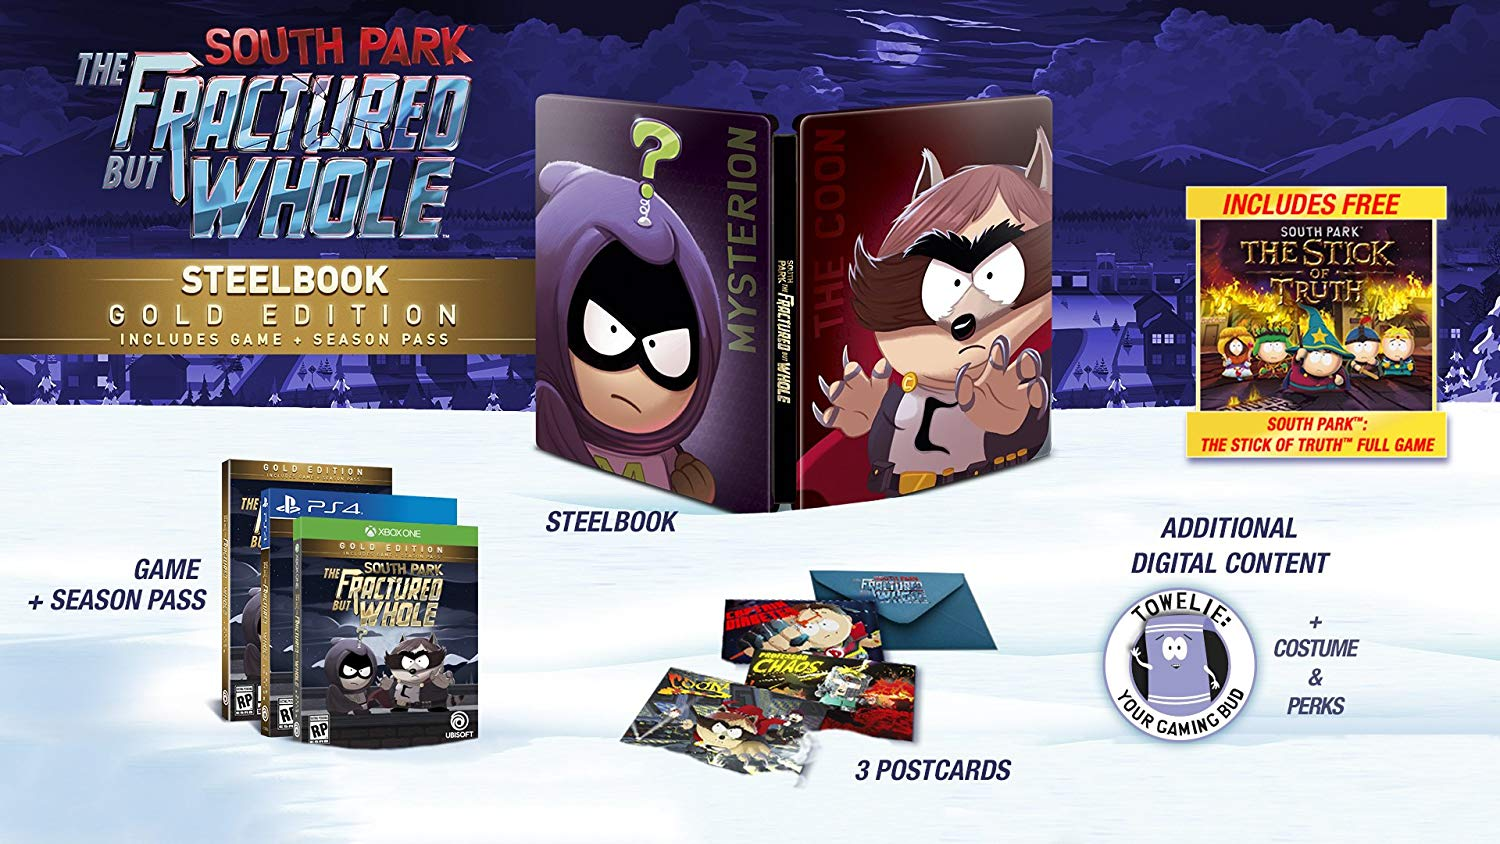 South Park: The Fractured but Whole Steelbook Gold Edition (Includes Season Pass subscription) - PC [video game]